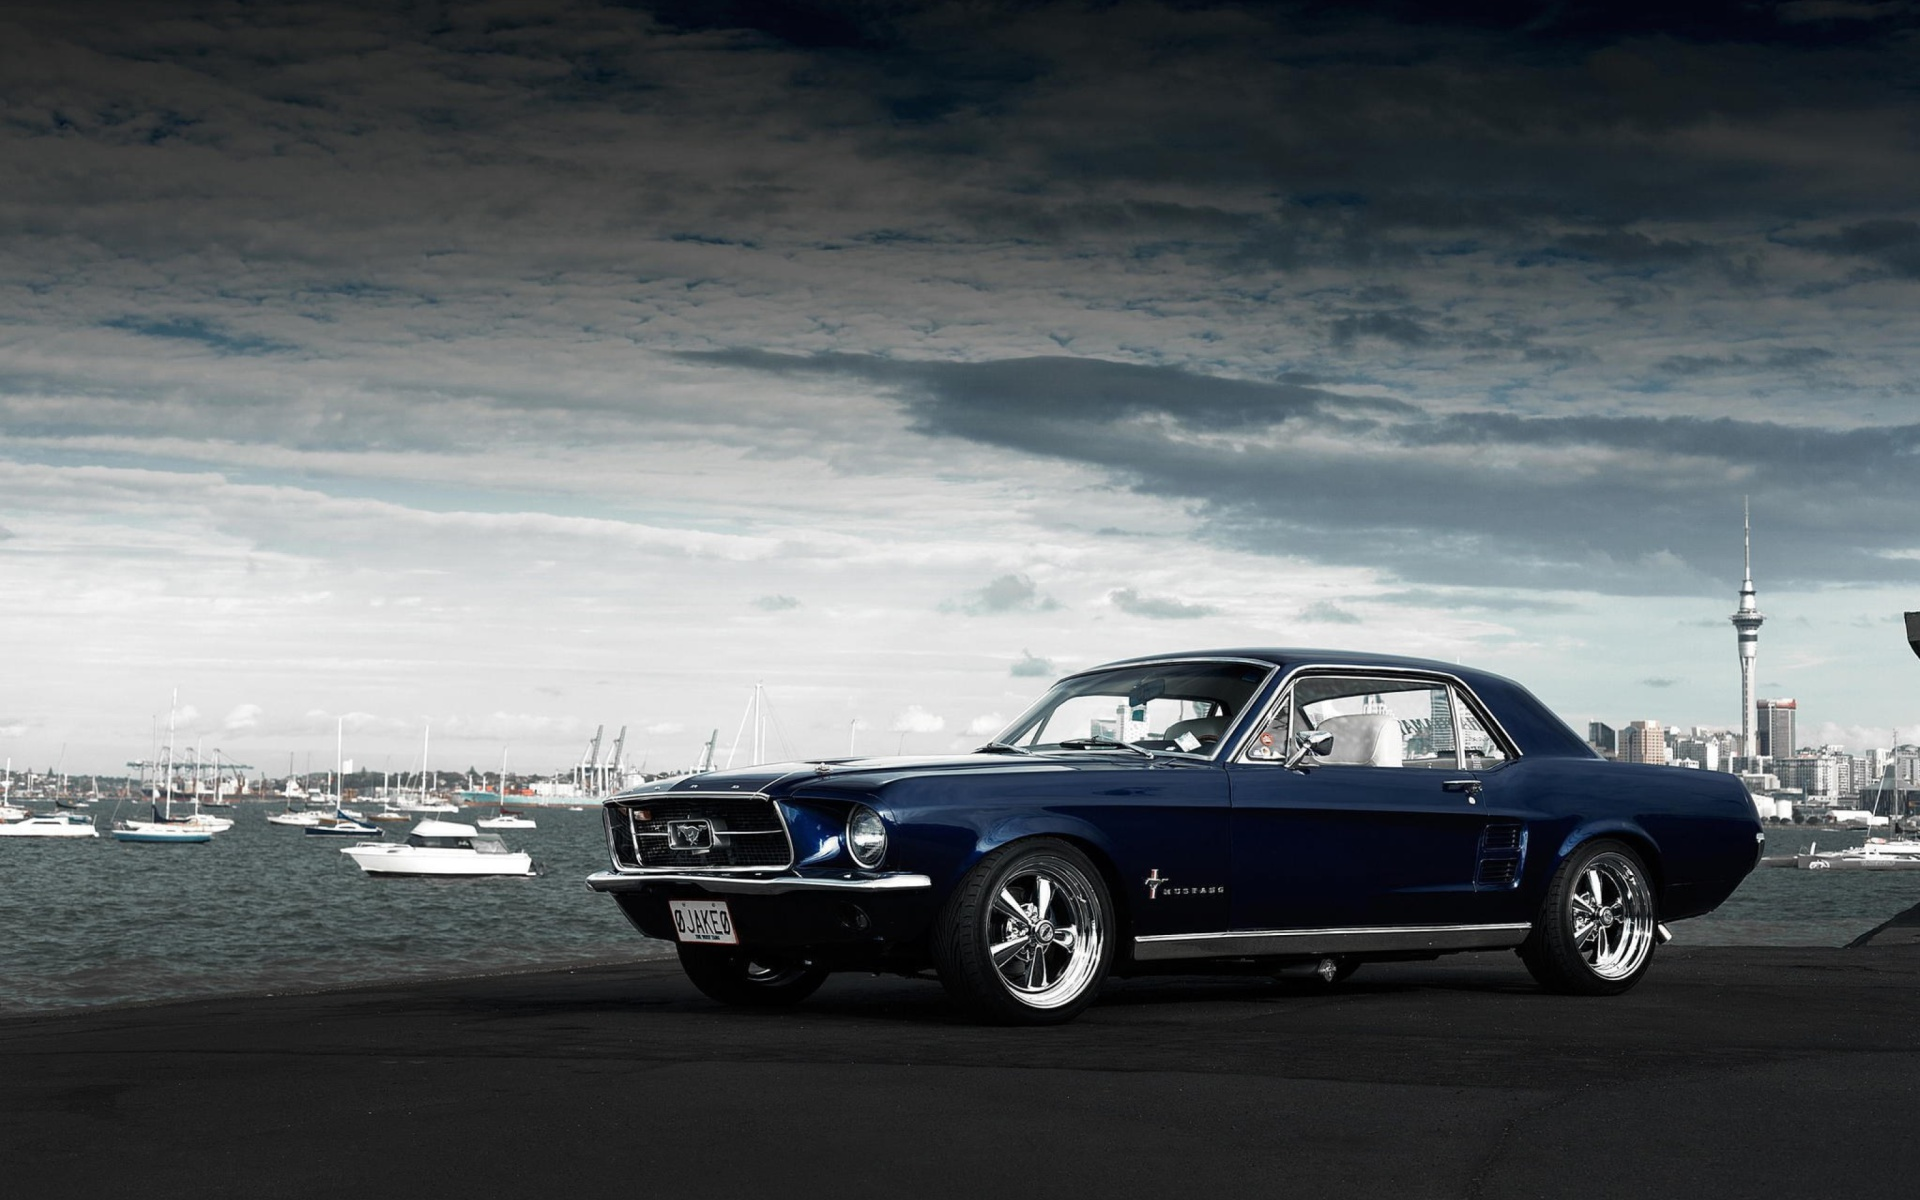 ford mustang 1967 wallpaper for widescreen desktop pc